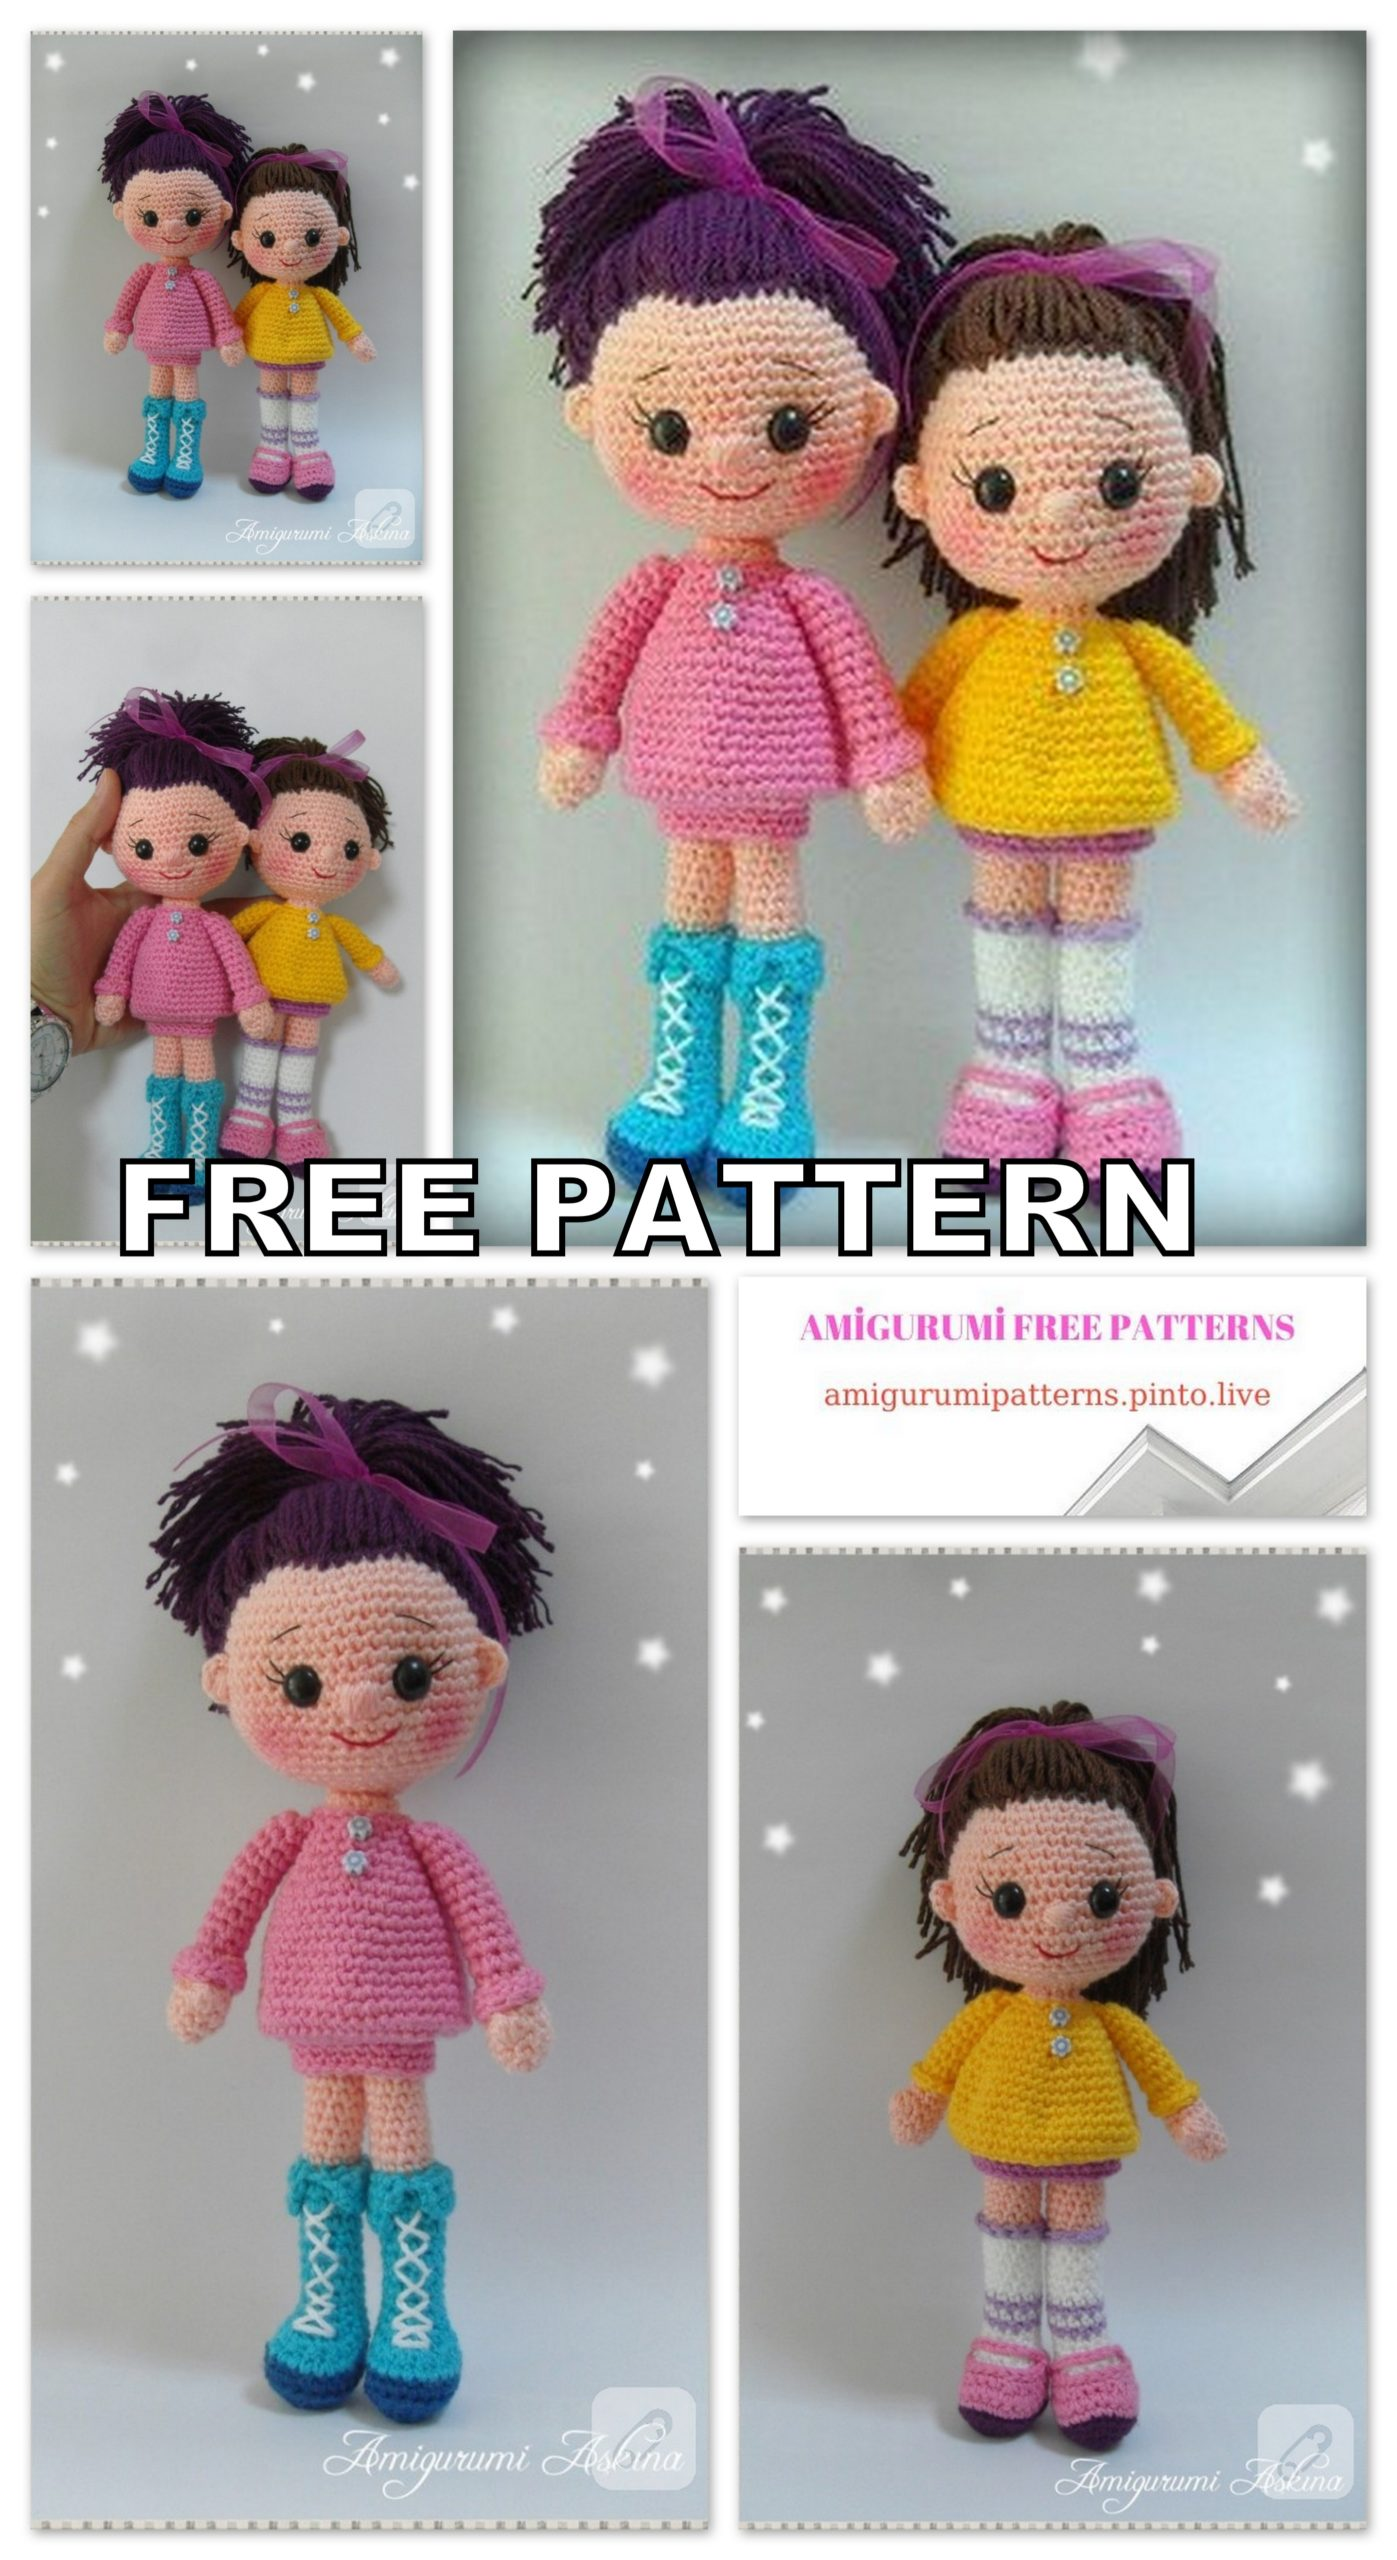 Amigurumi Free Pattern Lawyer Doll... - Tiny Mini Design | Facebook | 2560x1397